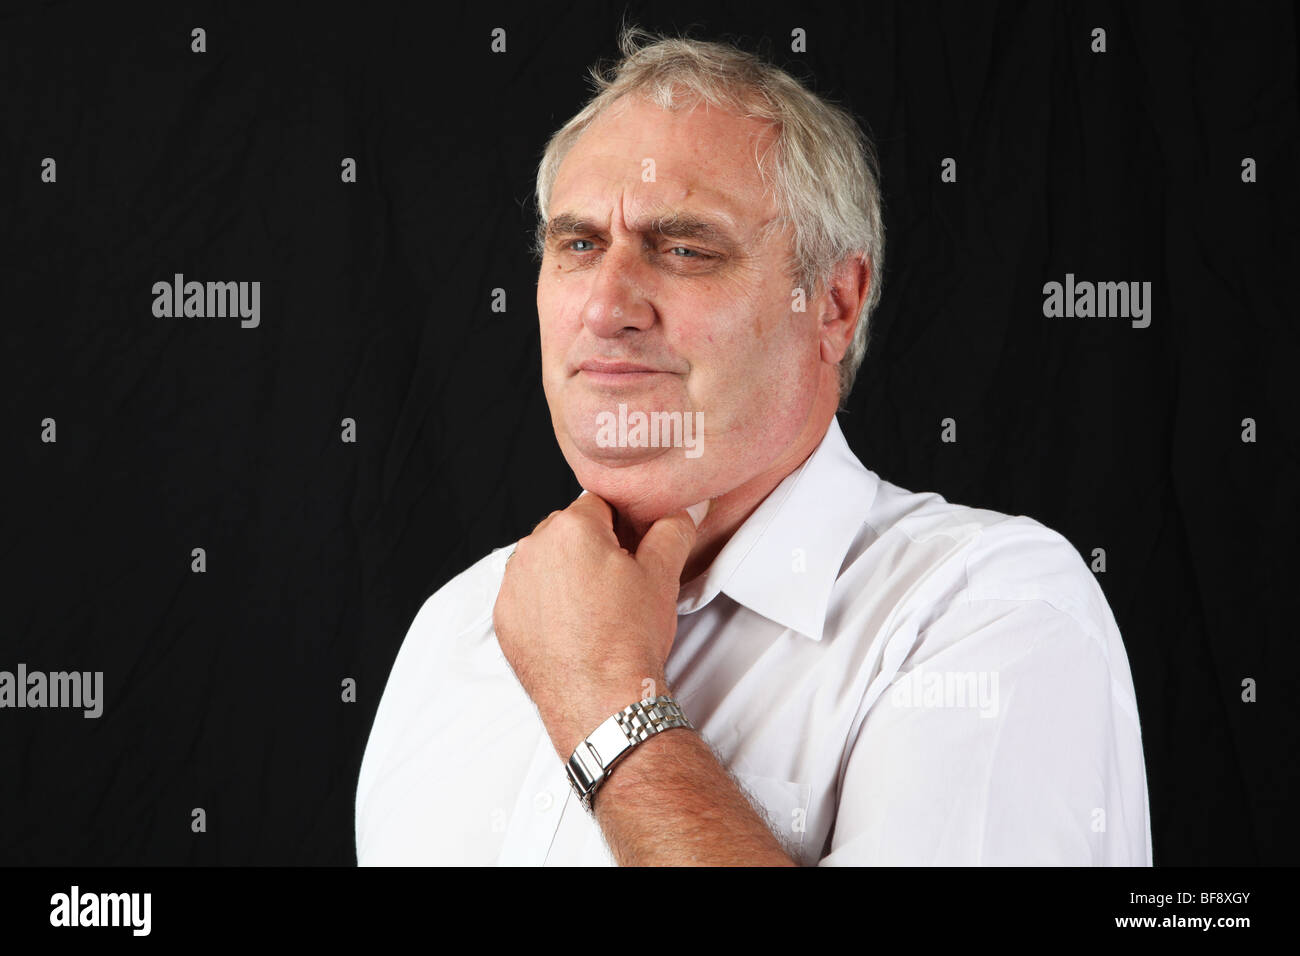 Mature late middle aged 50s 60s man holding neck suffering with sore throat common cold flu sick ill - Stock Image